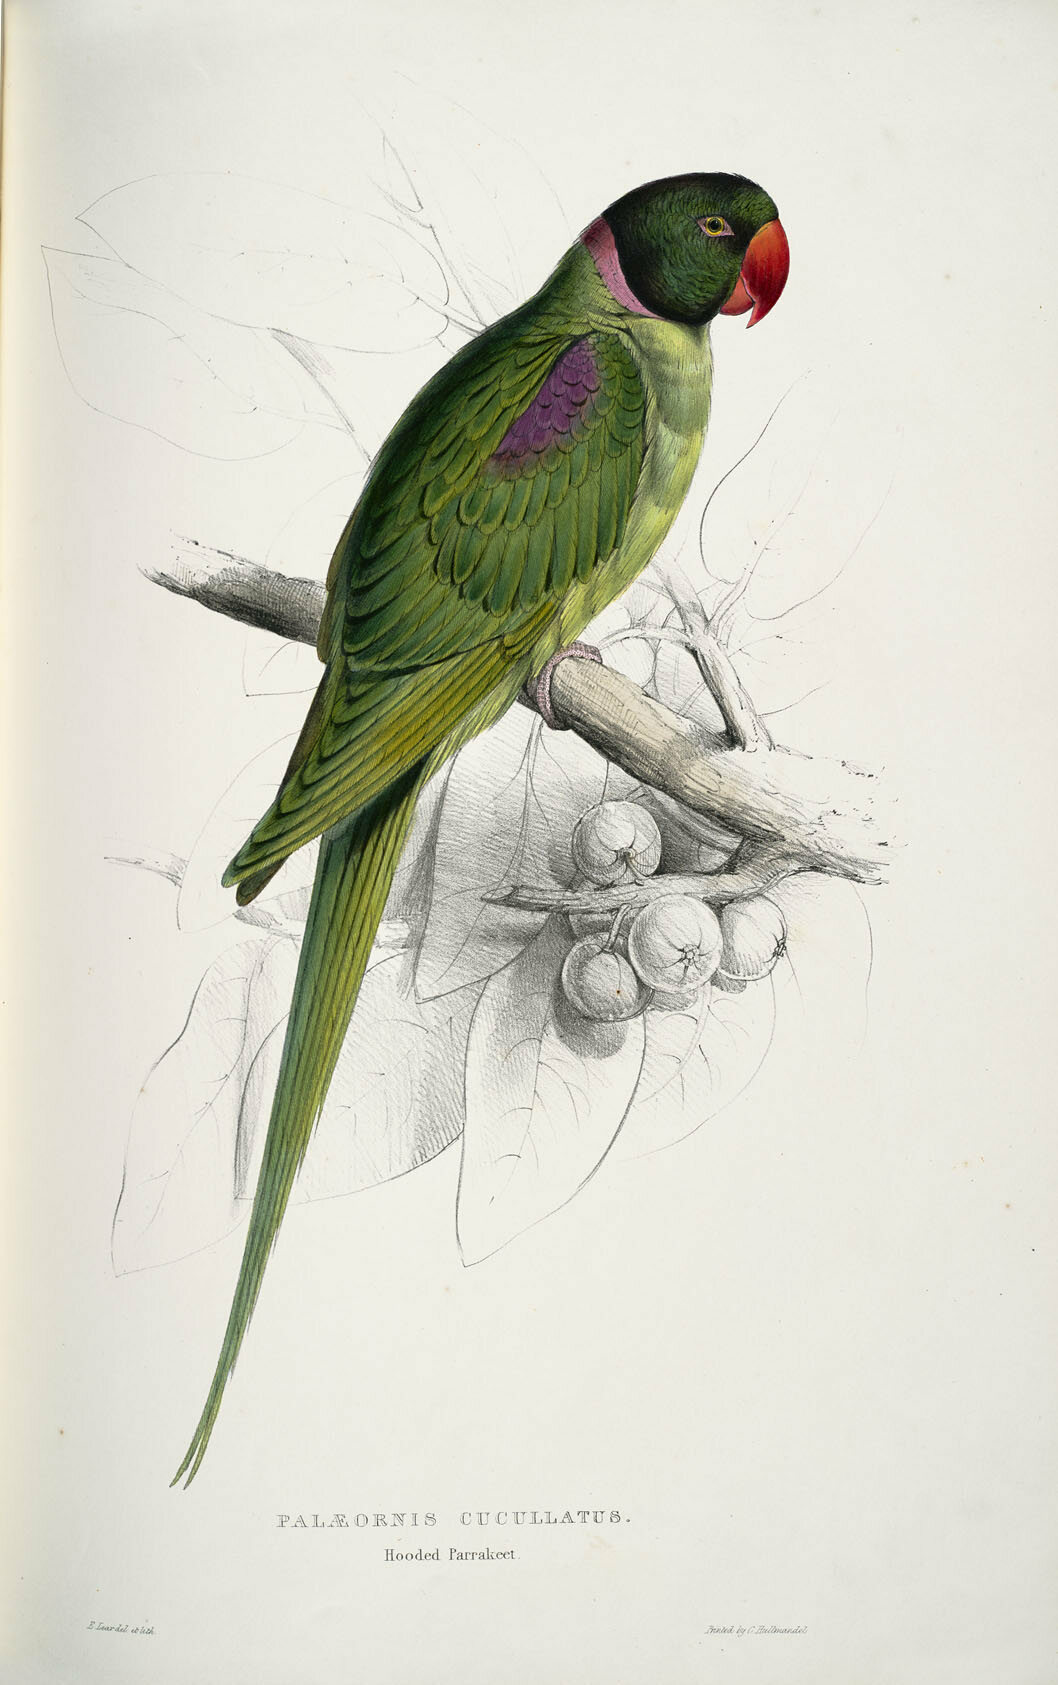 A hooded parakeet, drawn from life.